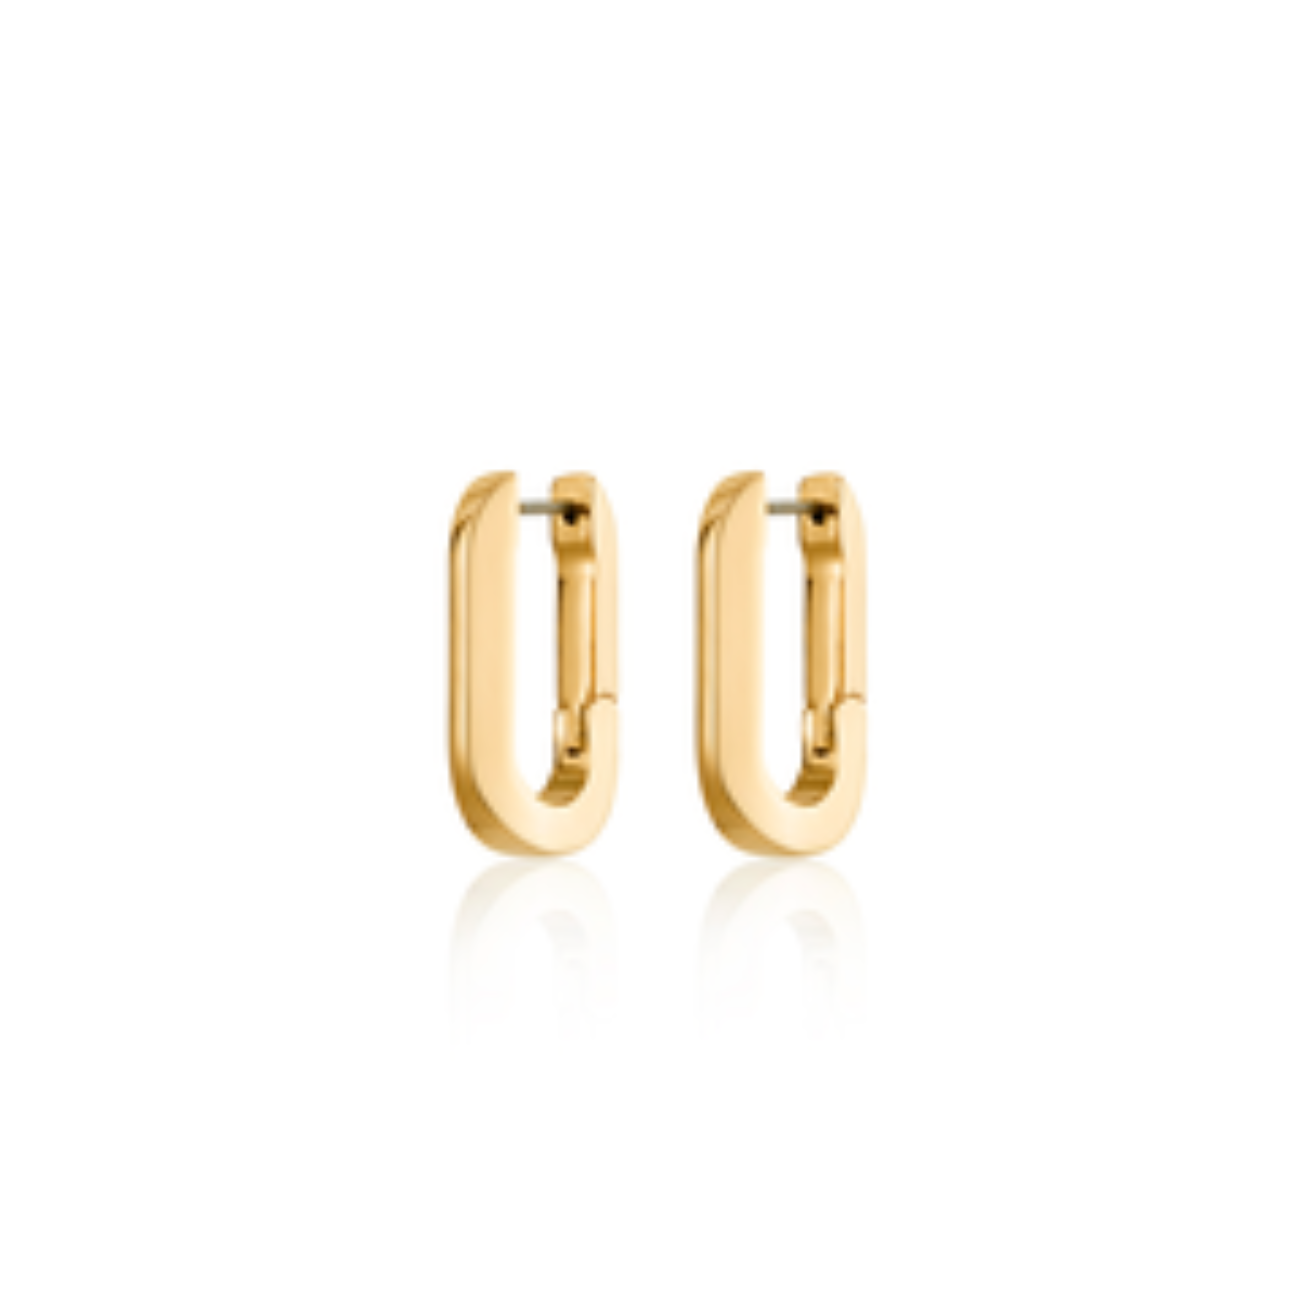 JENNY BIRD - U-LINK EARRING IN GOLD